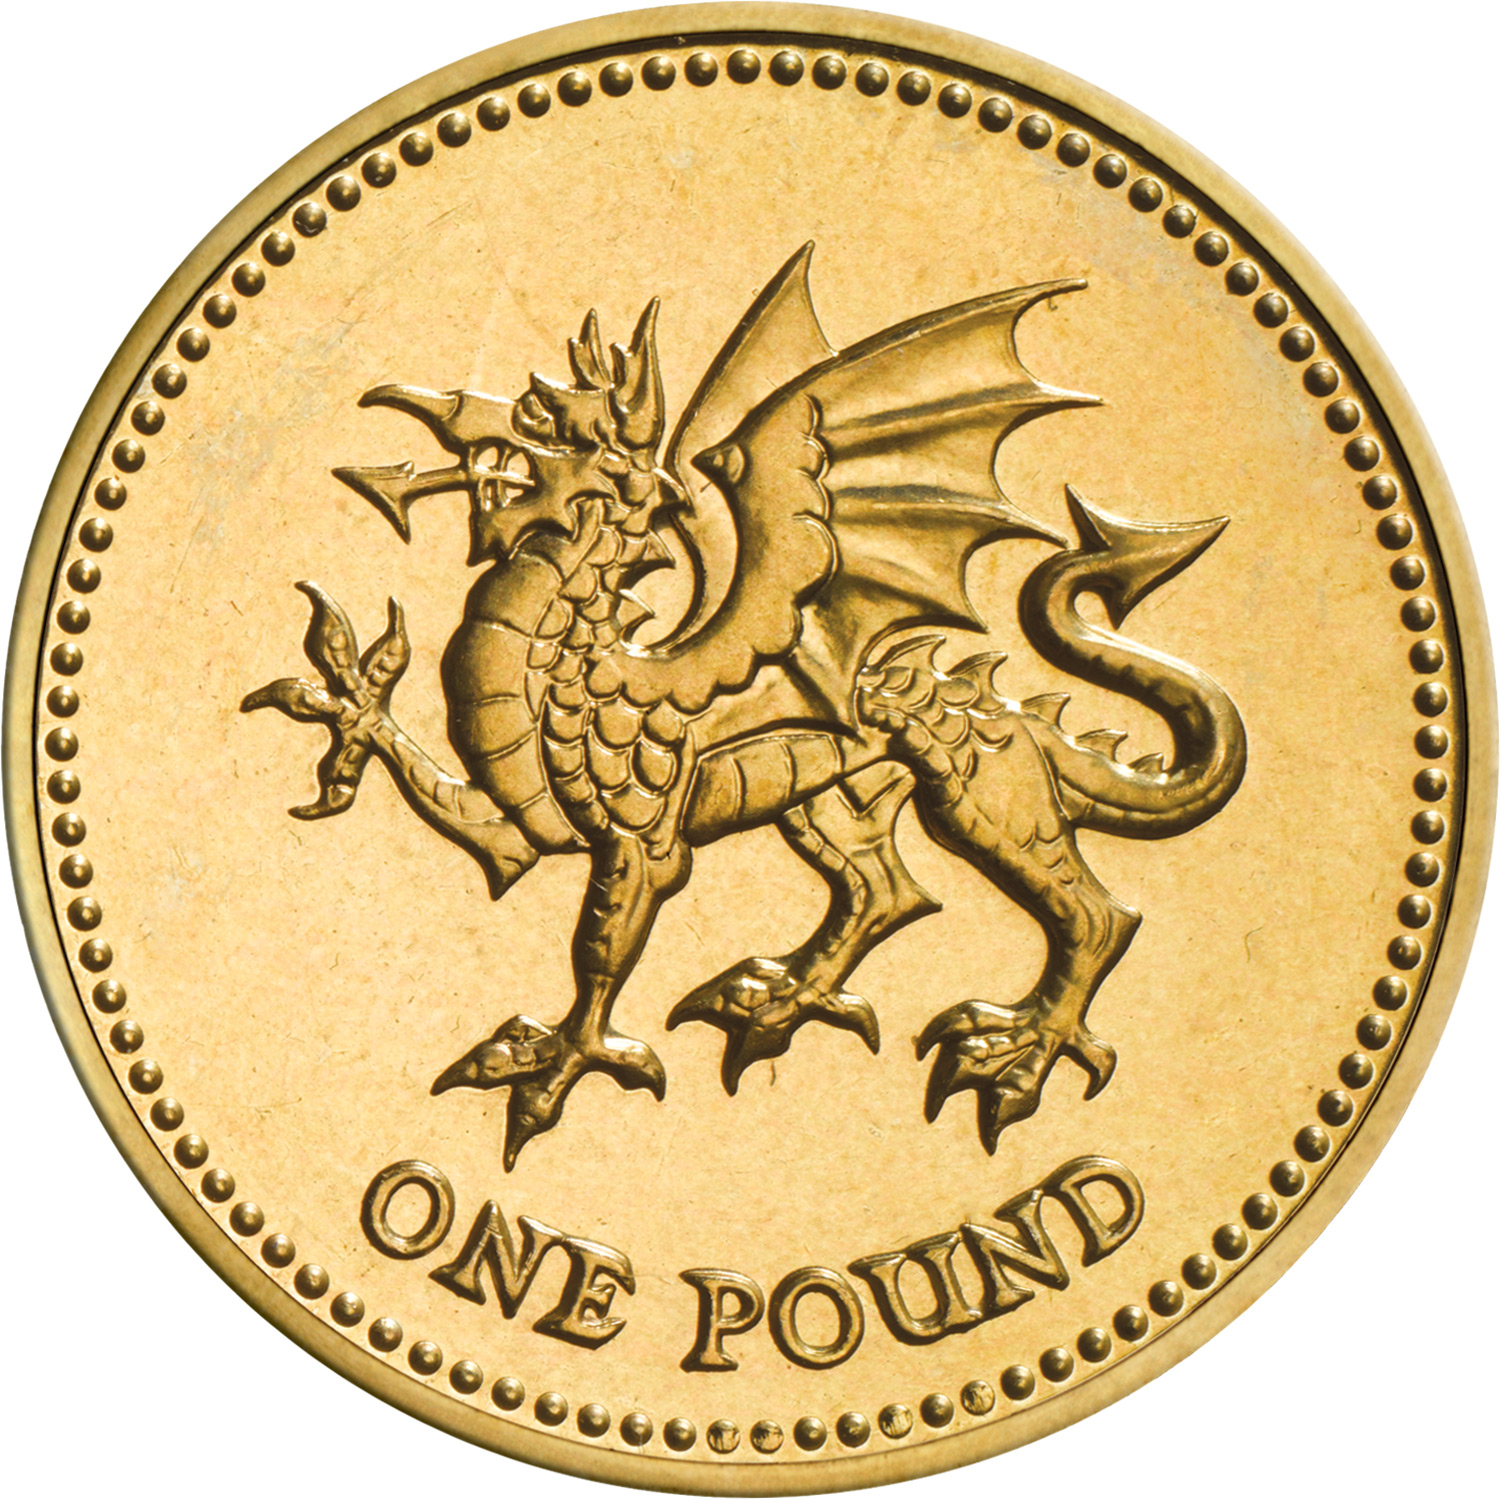 New 1 Pound Sterling coin Great Britain - Exchange yours today